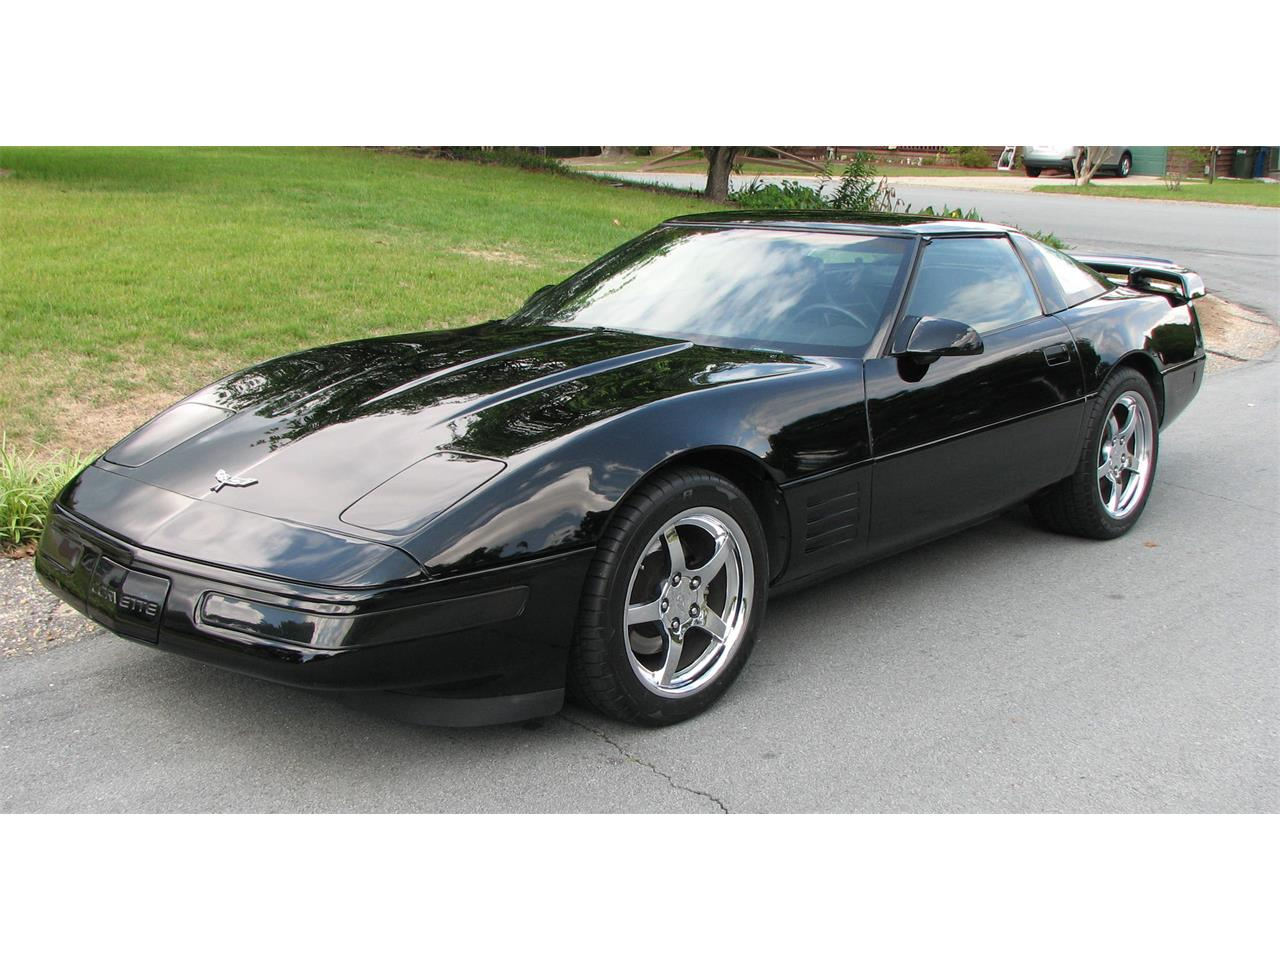 Large Picture of 1991 Chevrolet Corvette located in North Carolina - L16X